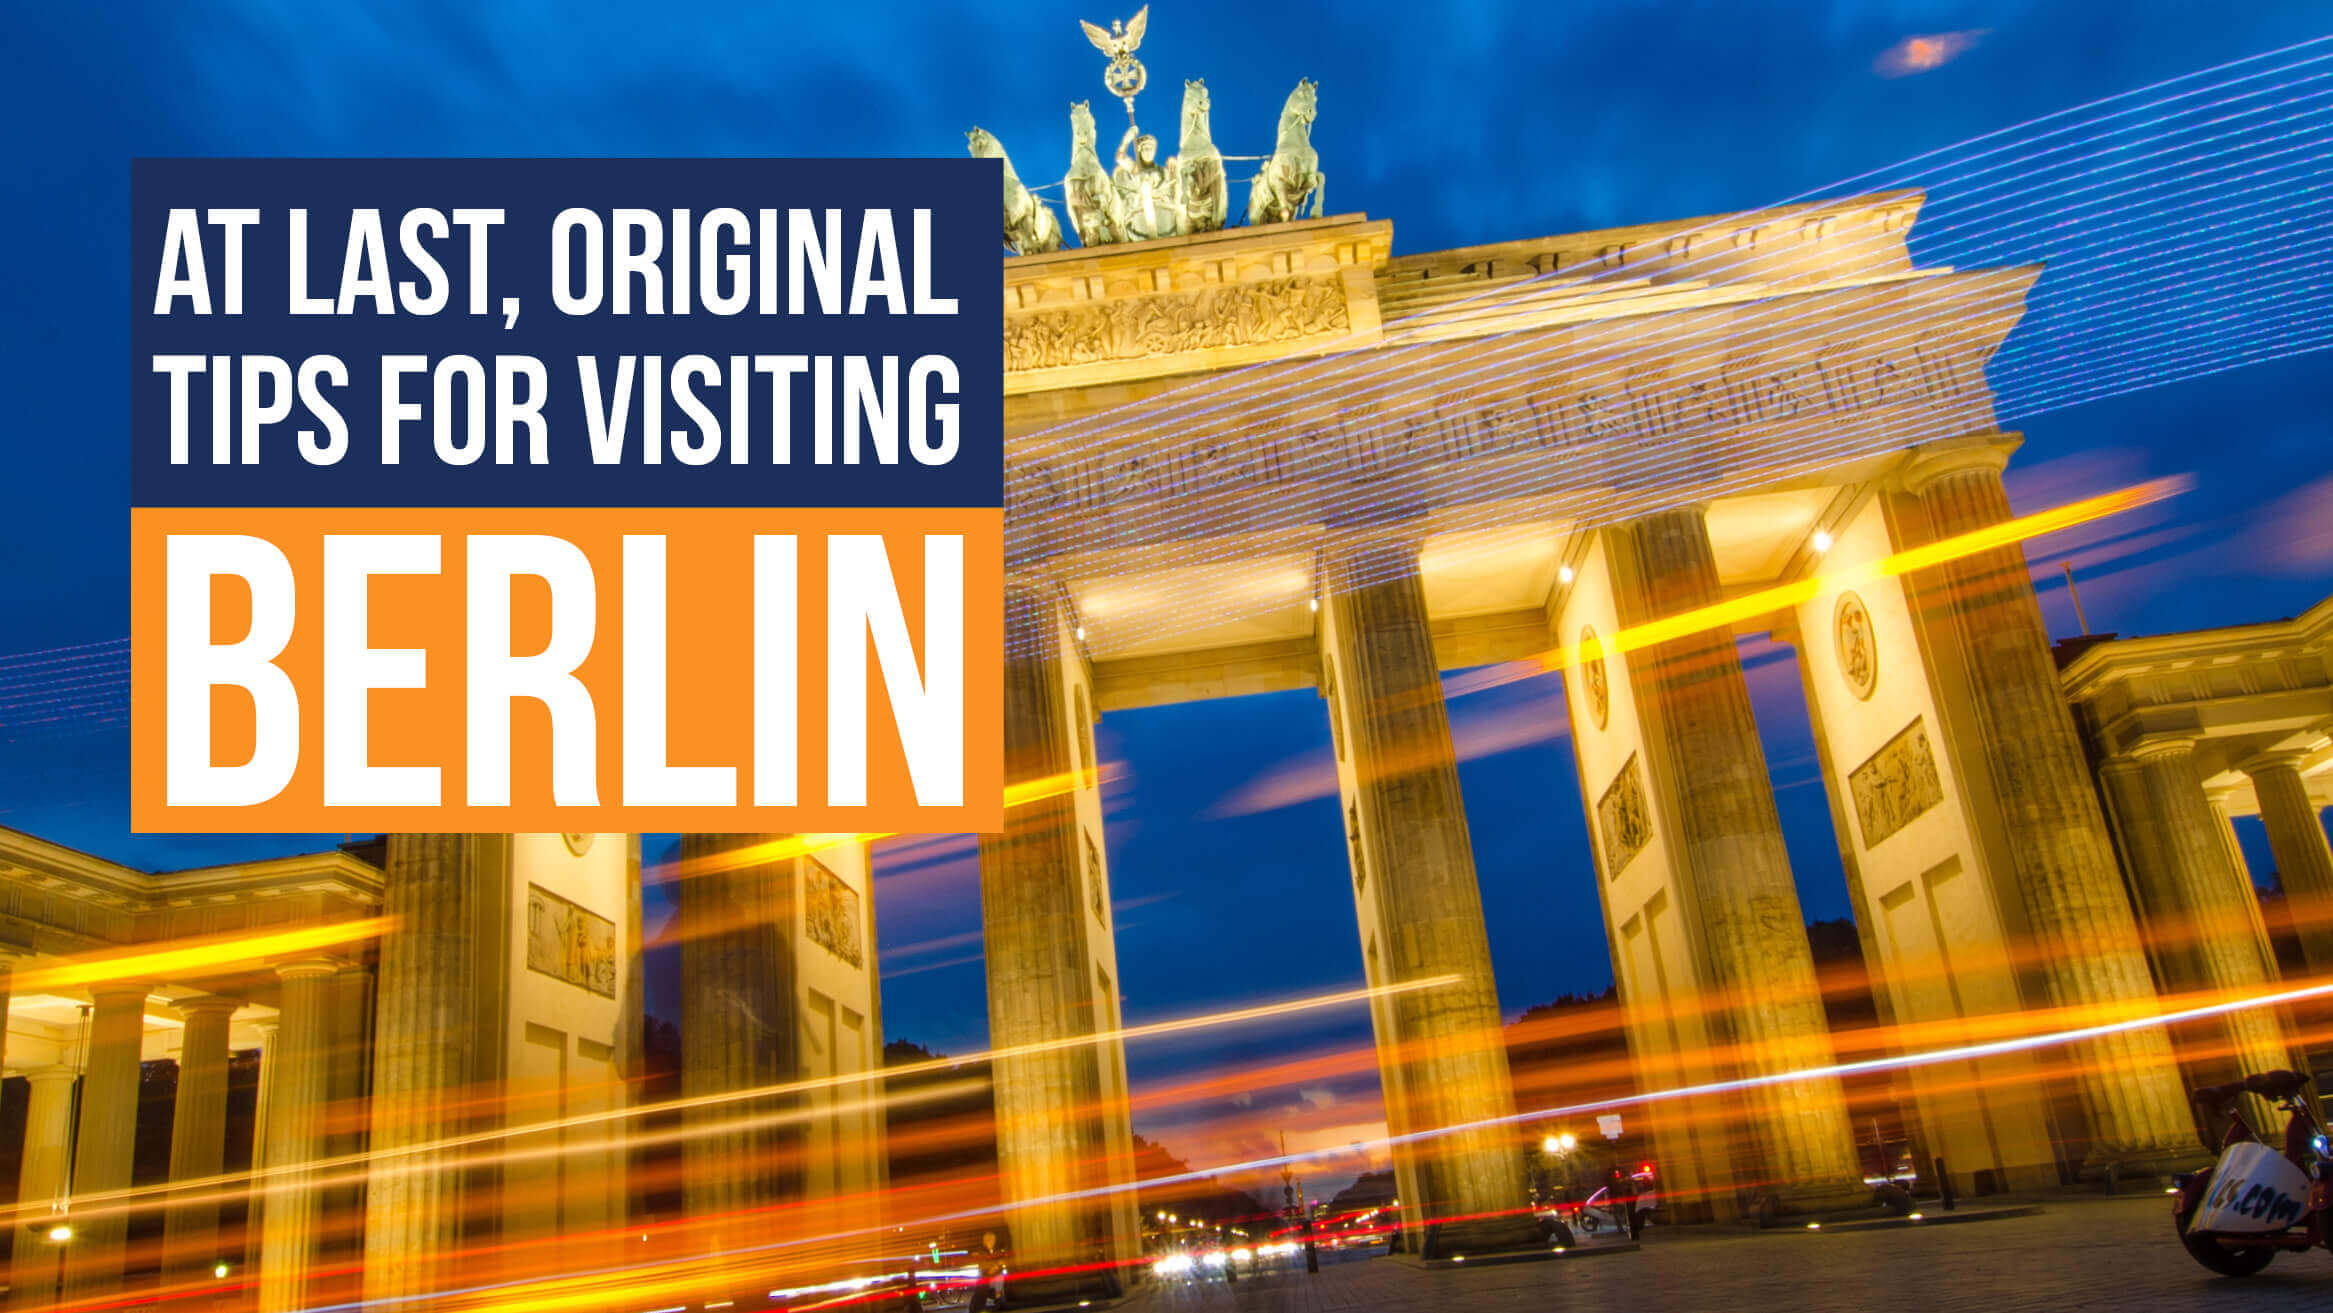 At Last, Original Tips For Visiting Berlin